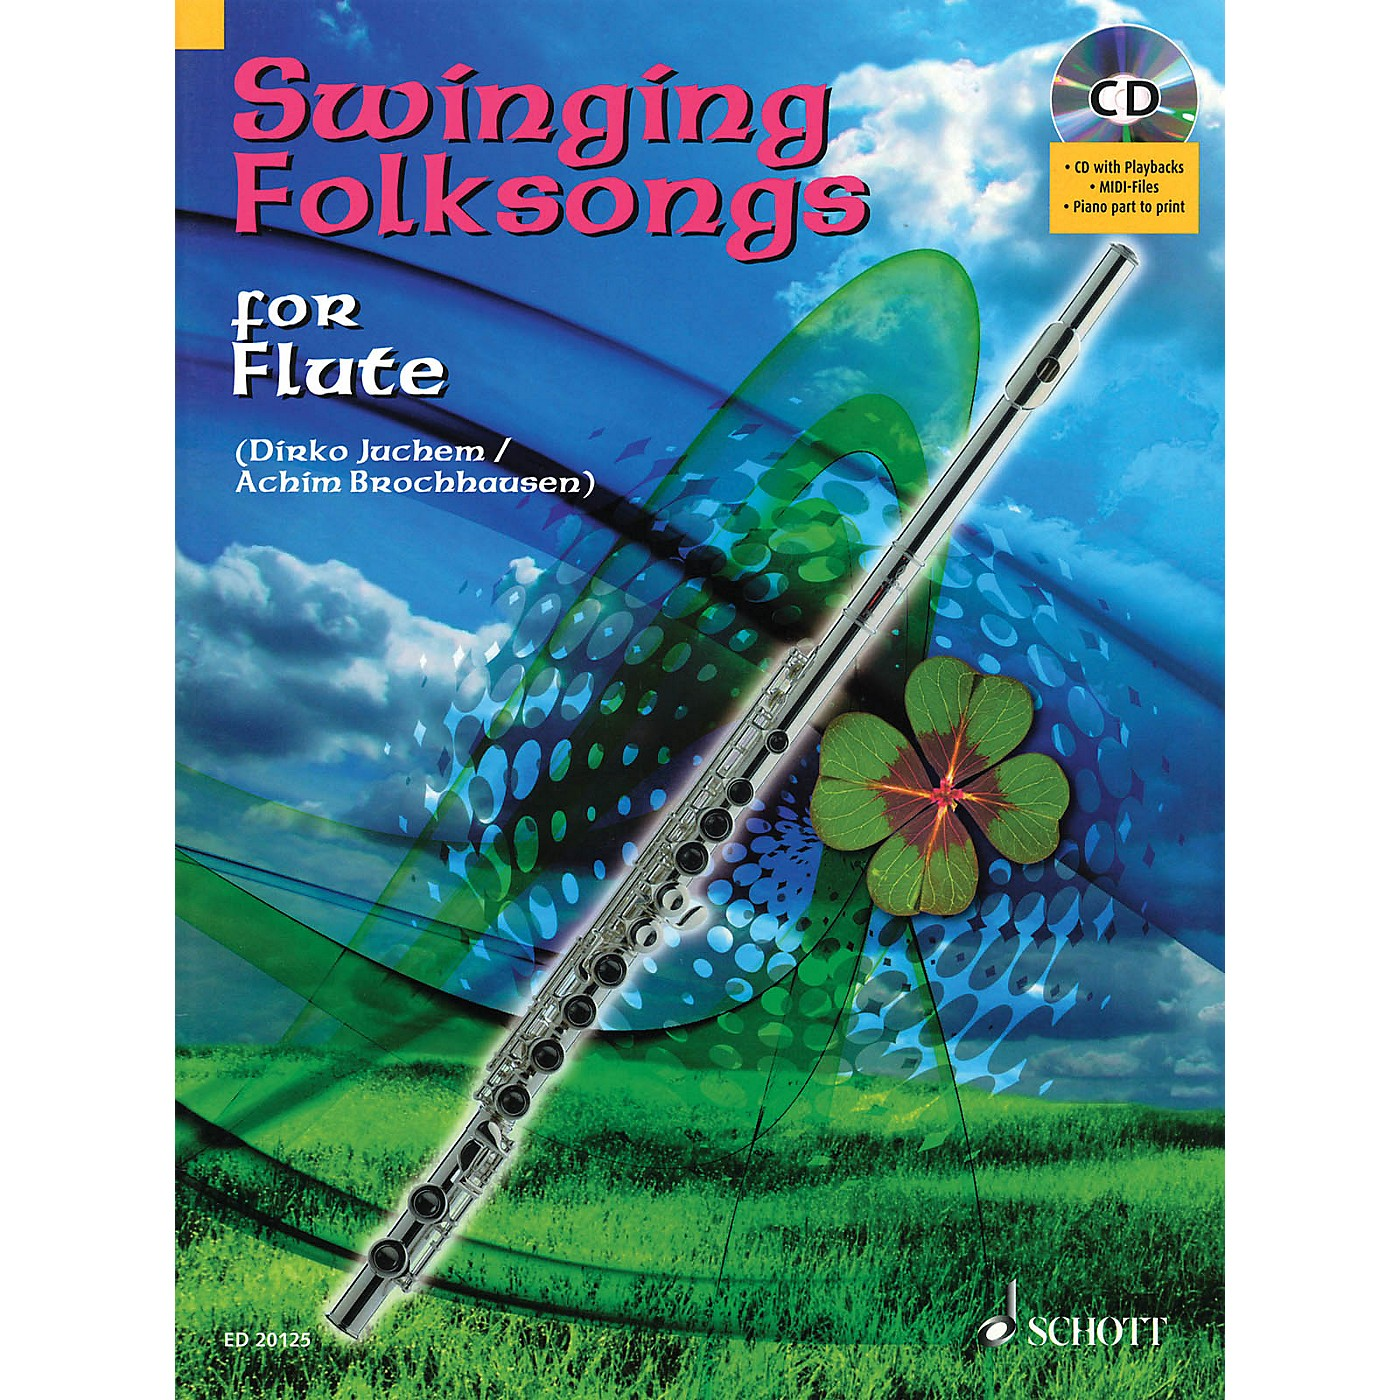 Hal Leonard Swinging Folksongs Play-along For Flute Bk/CD With Piano Parts To Print Woodwind Solo Series thumbnail